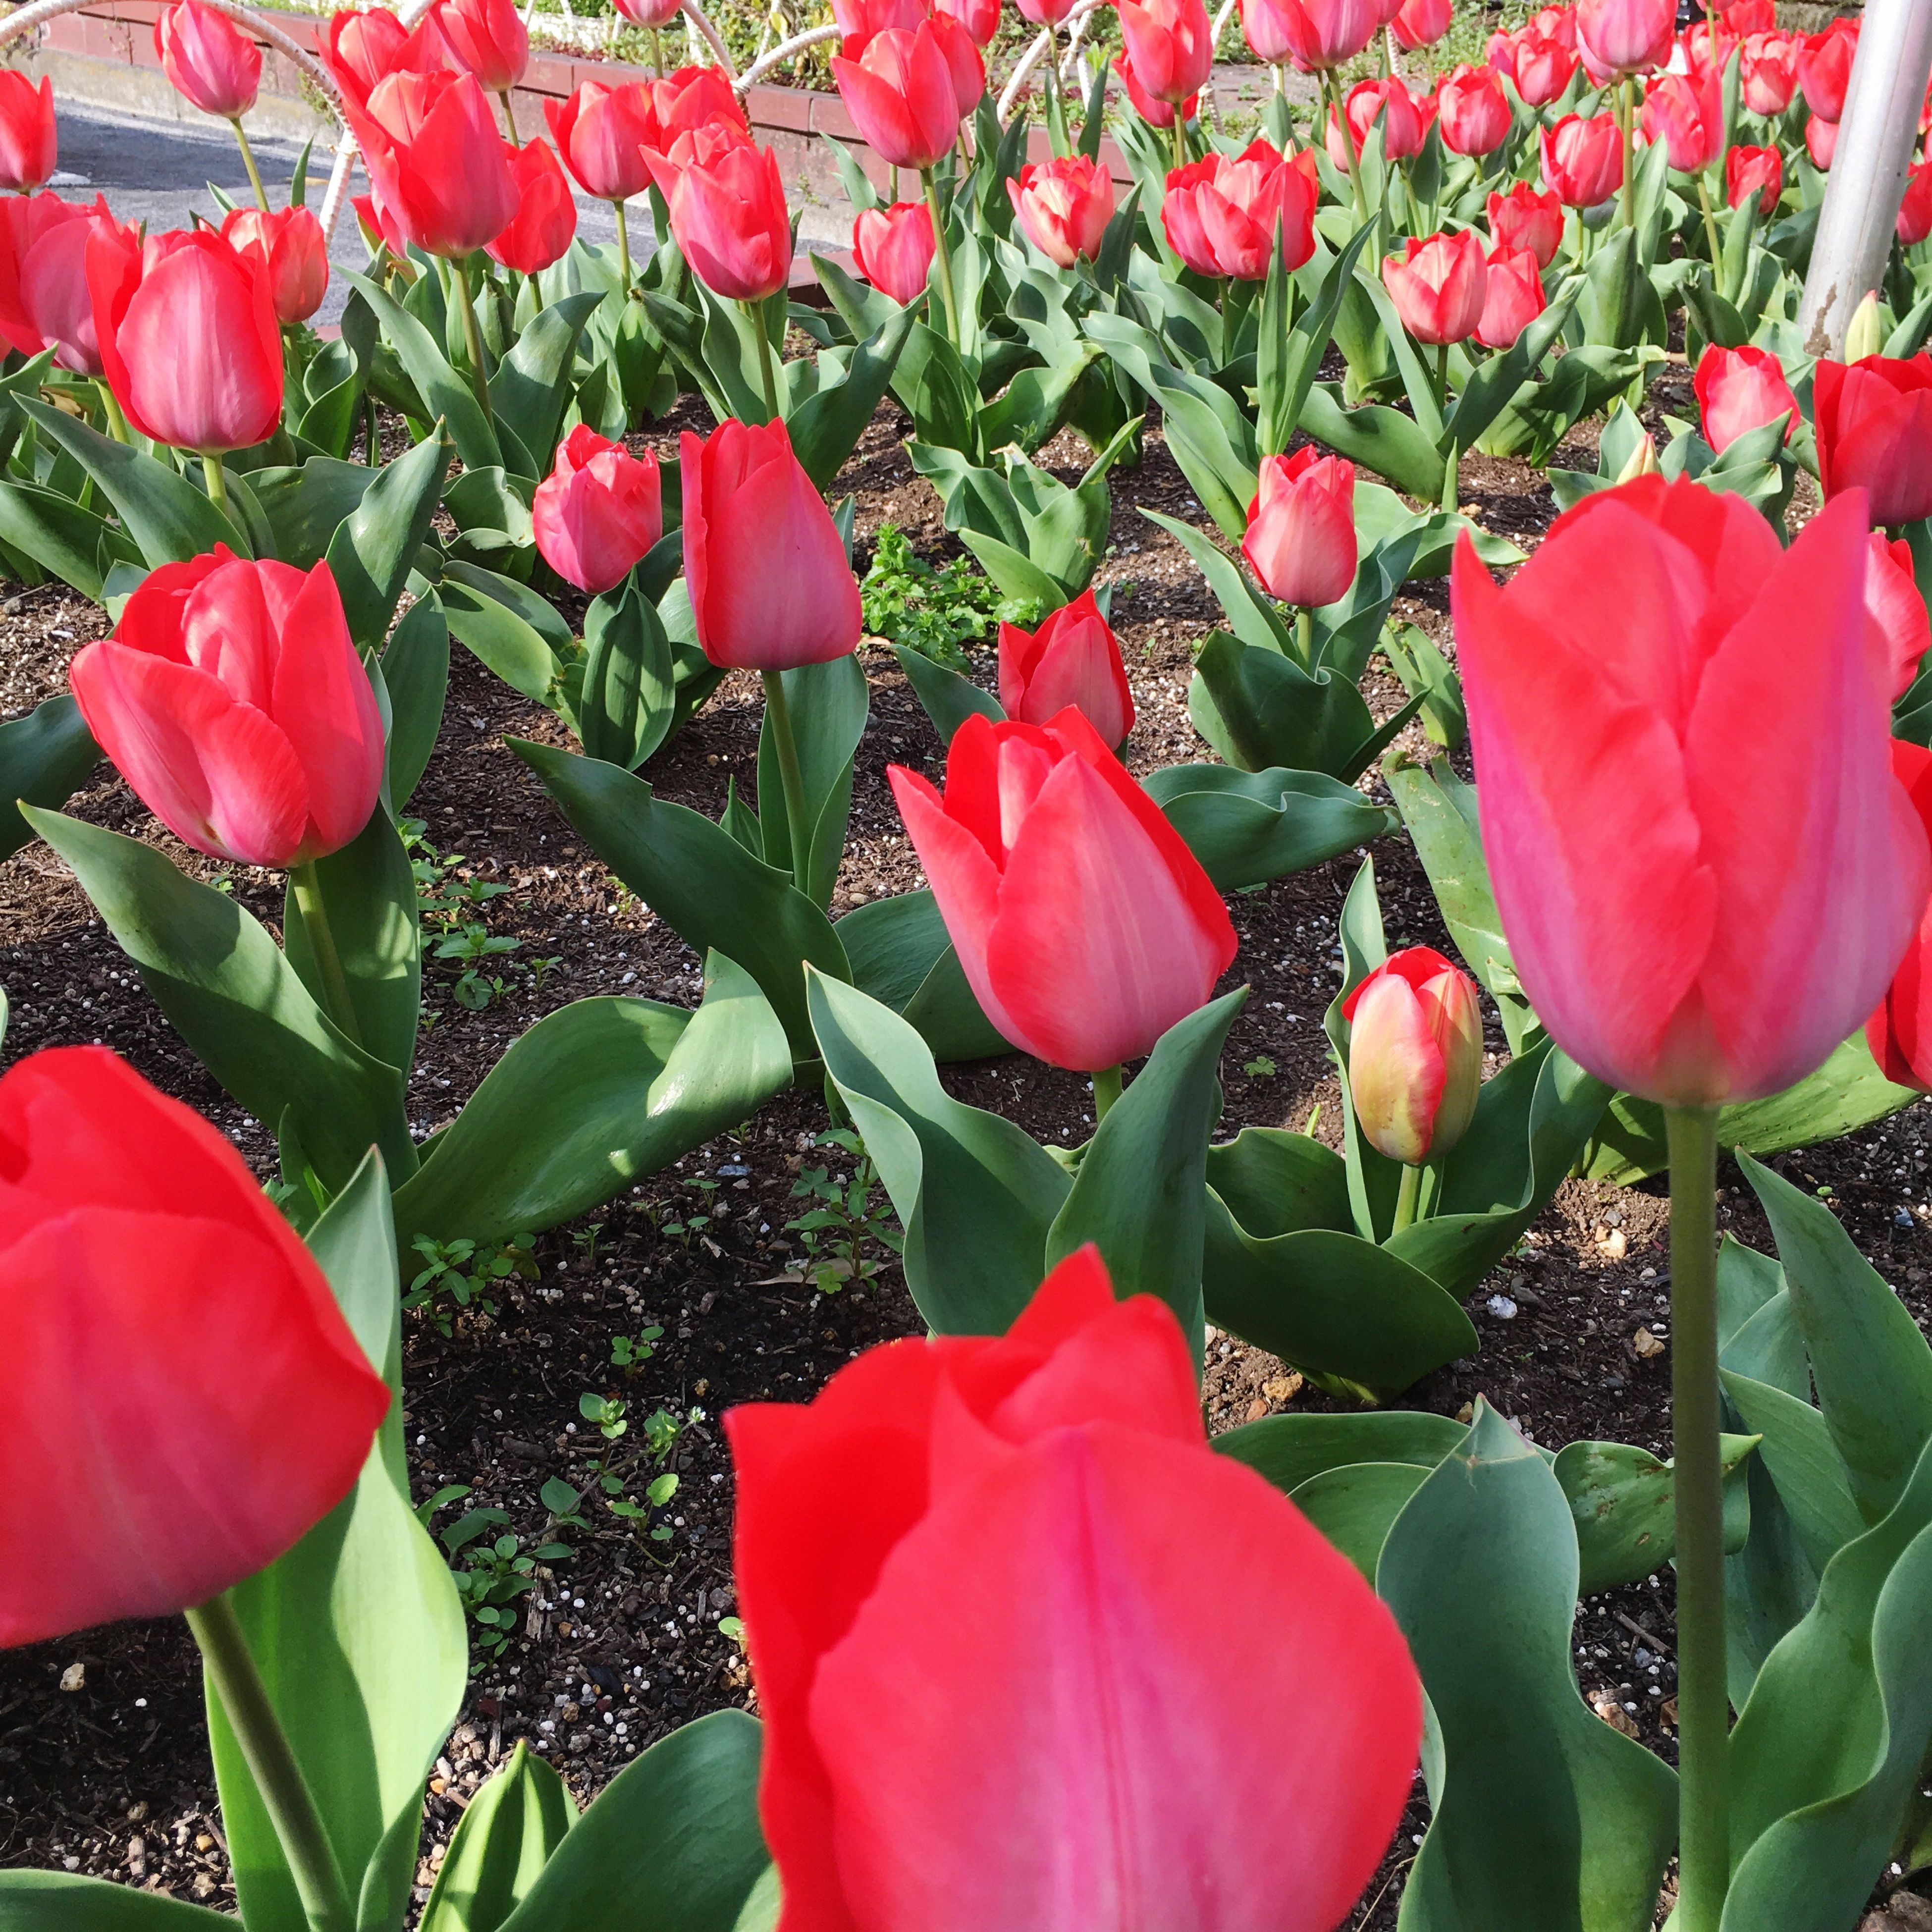 flower, freshness, red, petal, growth, fragility, beauty in nature, tulip, leaf, flower head, plant, blooming, nature, pink color, in bloom, blossom, close-up, botany, day, field